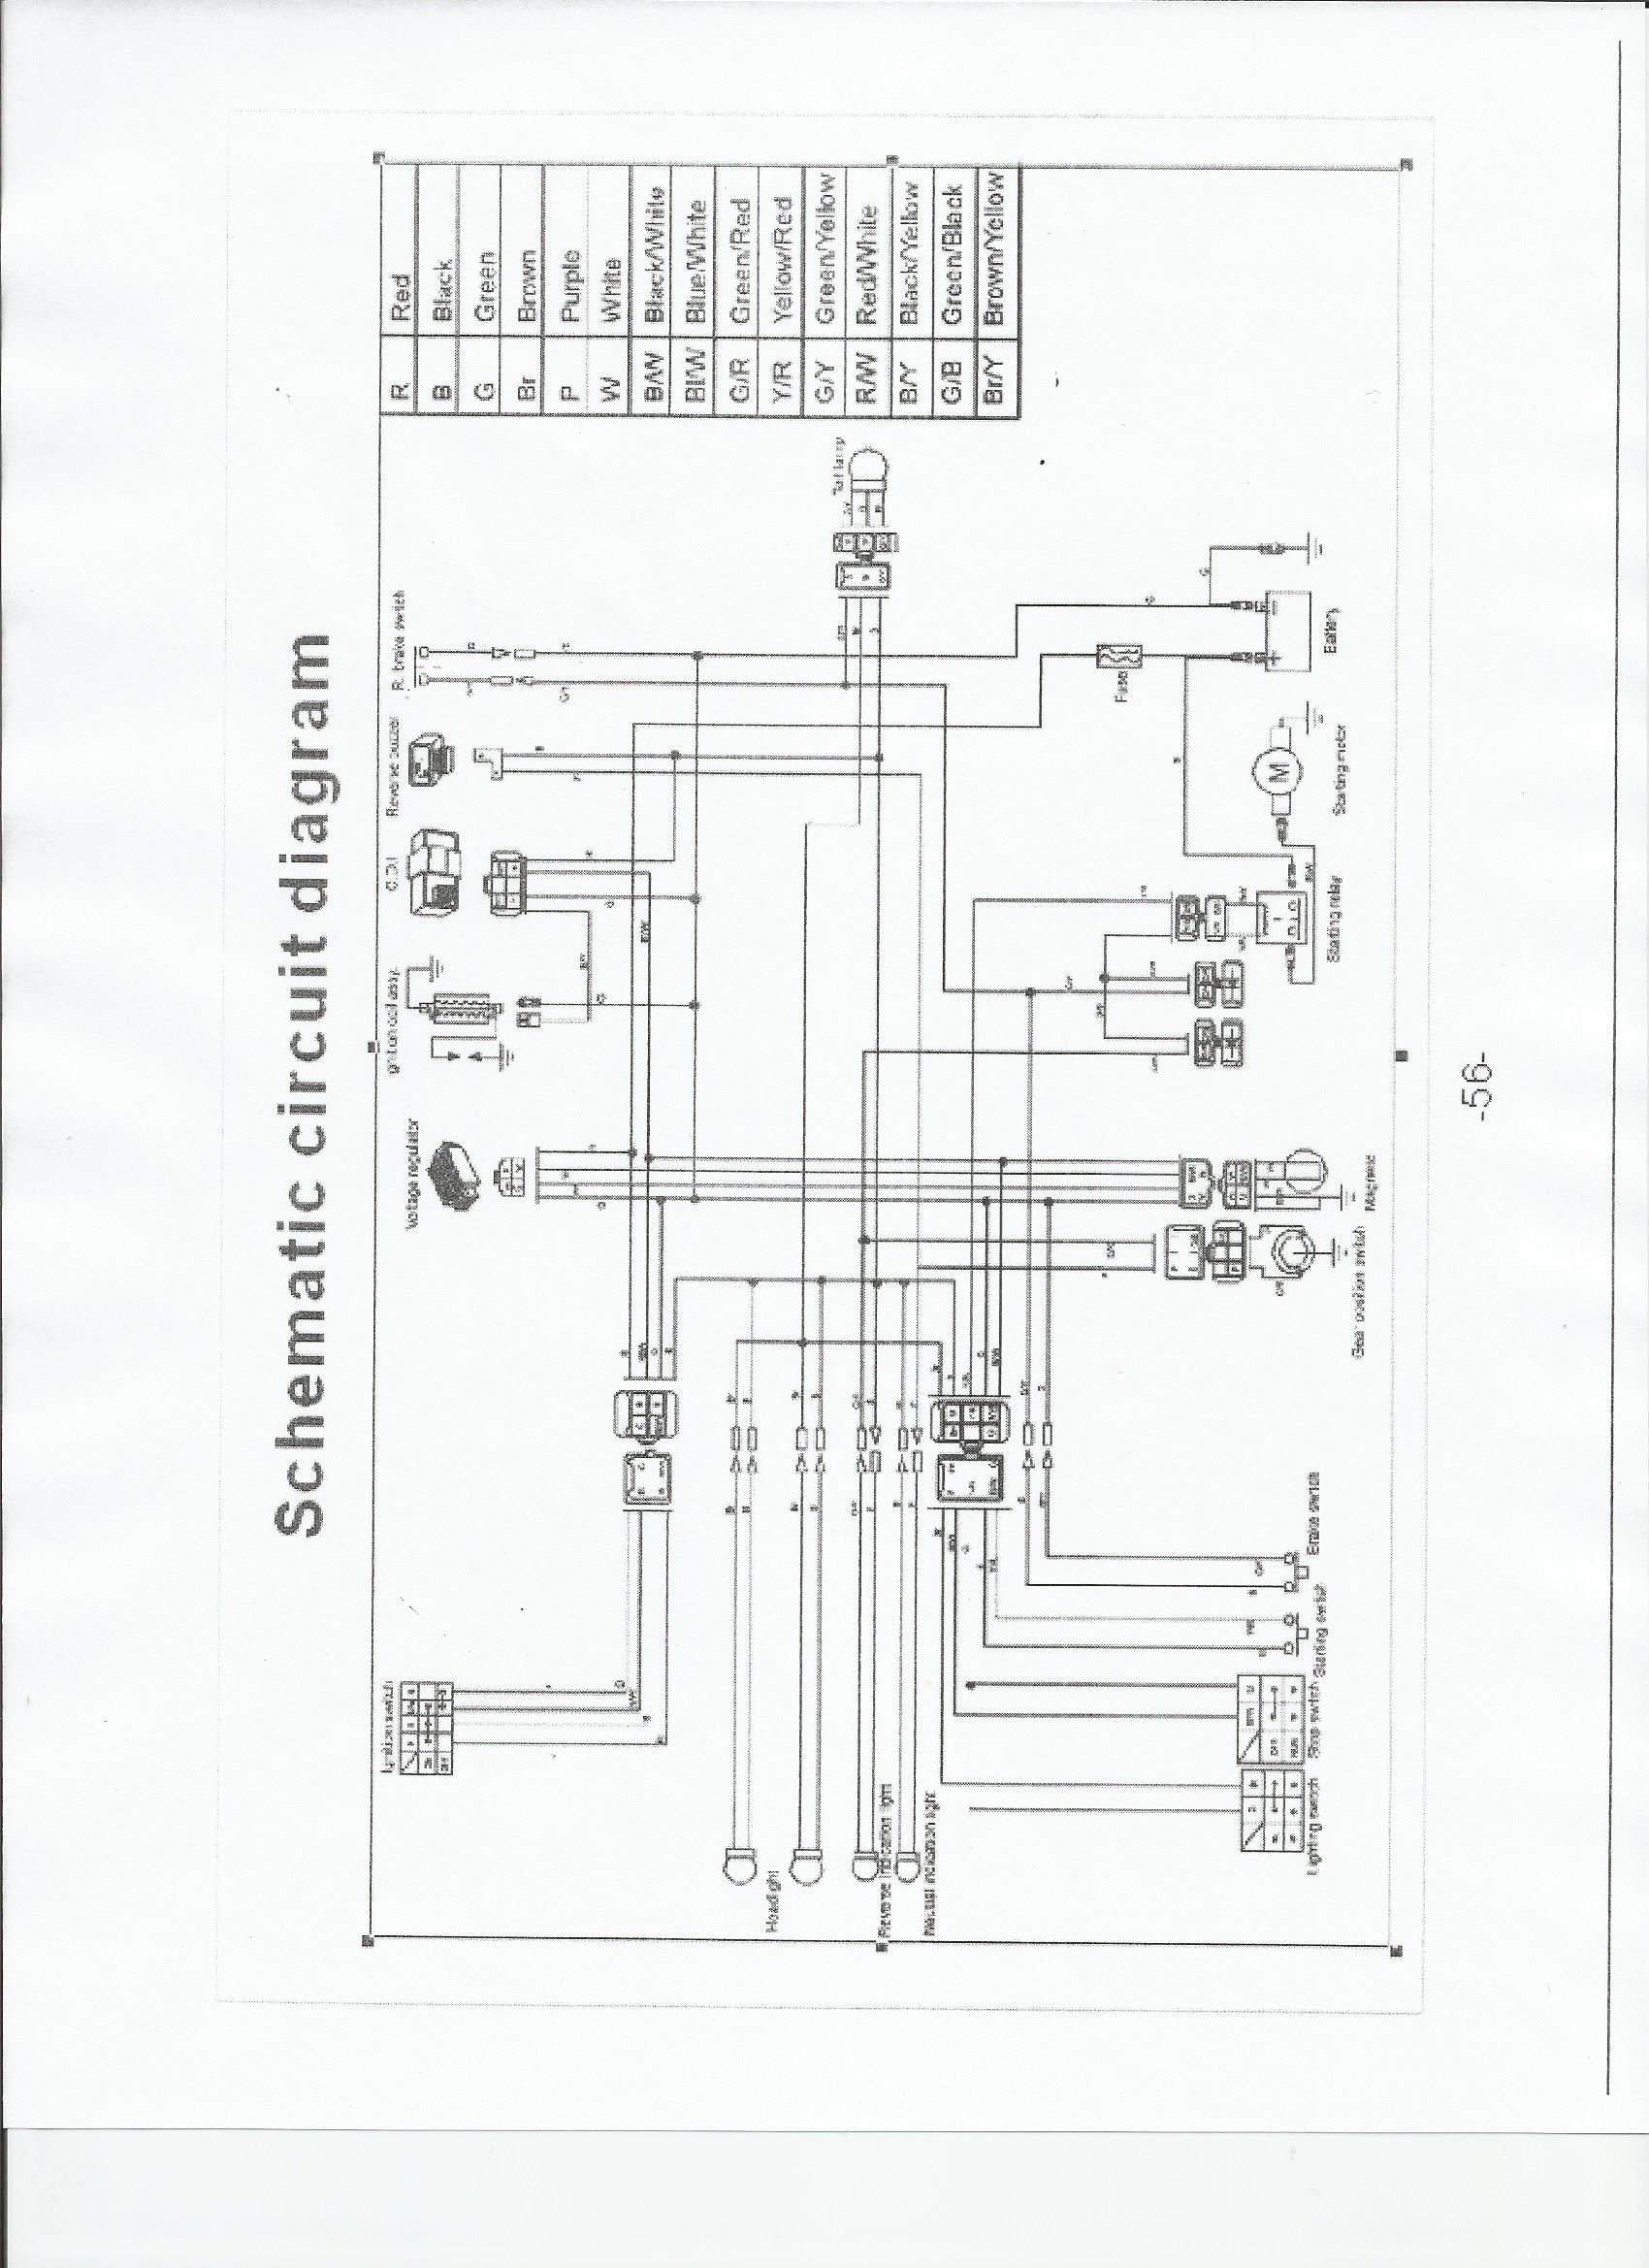 tao tao wiring schematic taotao mini and youth atv wiring schematic familygokarts support taotao scooter wiring diagram at virtualis.co